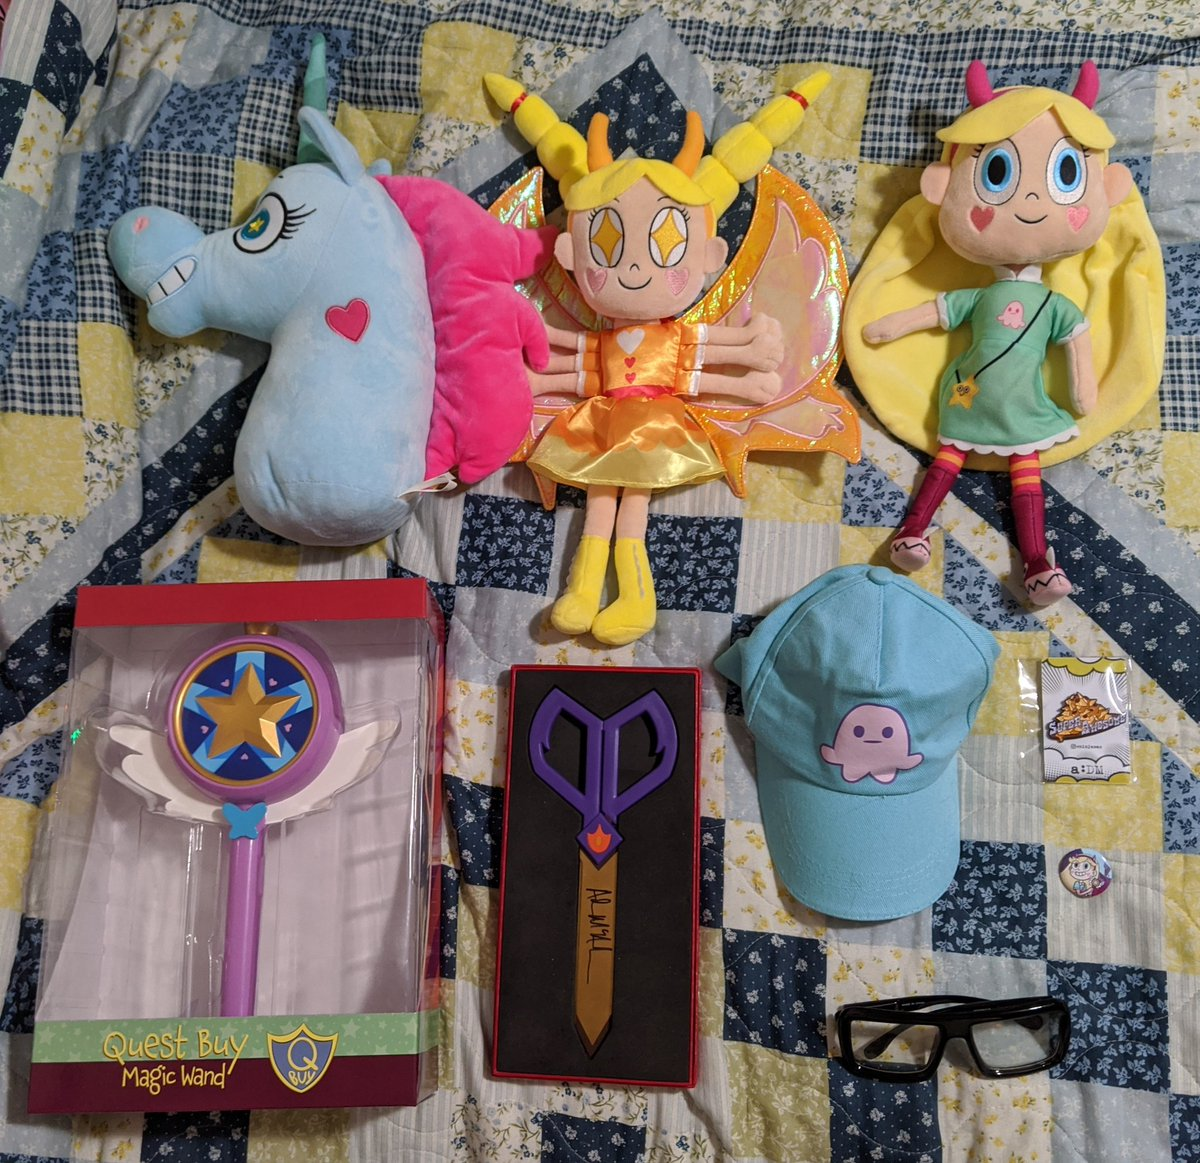 @SaveSVTFOE5 wants me to share my #StarVsTheForcesOfEvil merch and fanwork today! I have a LOT of merch, both official and unofficial! I'm also counting @ninjamac's #aDM merch since it's #svtfoe related!  Oh by the way. @DisneyTVA? Hope you're seeing this!  #SaveSVTFOEpic.twitter.com/m7uryhjLhW